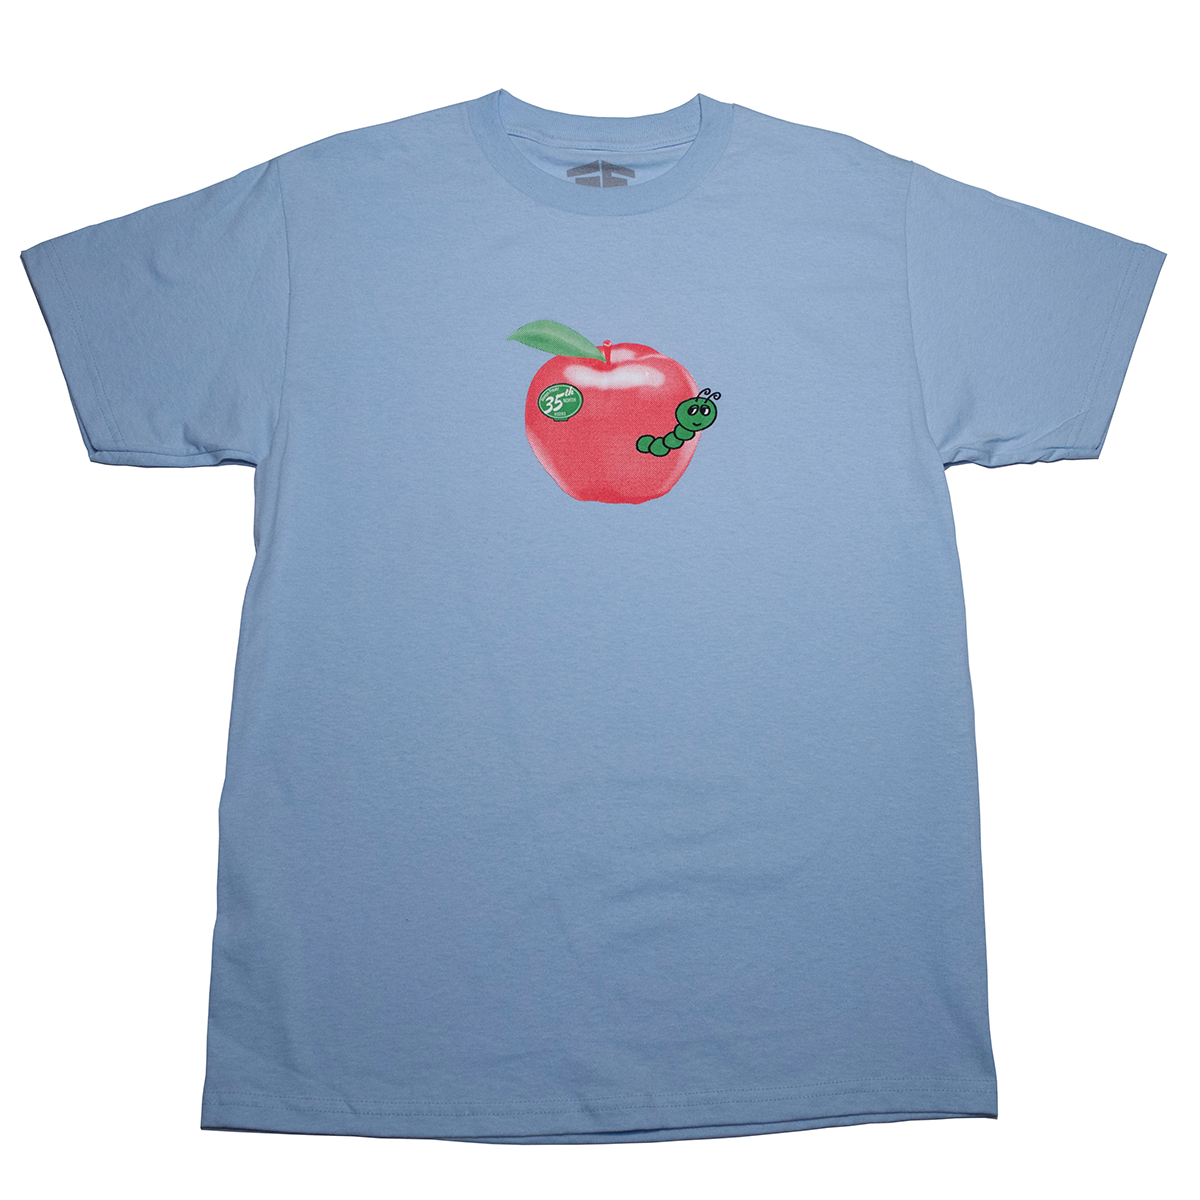 35th North Worm T-Shirt - Baby Blue